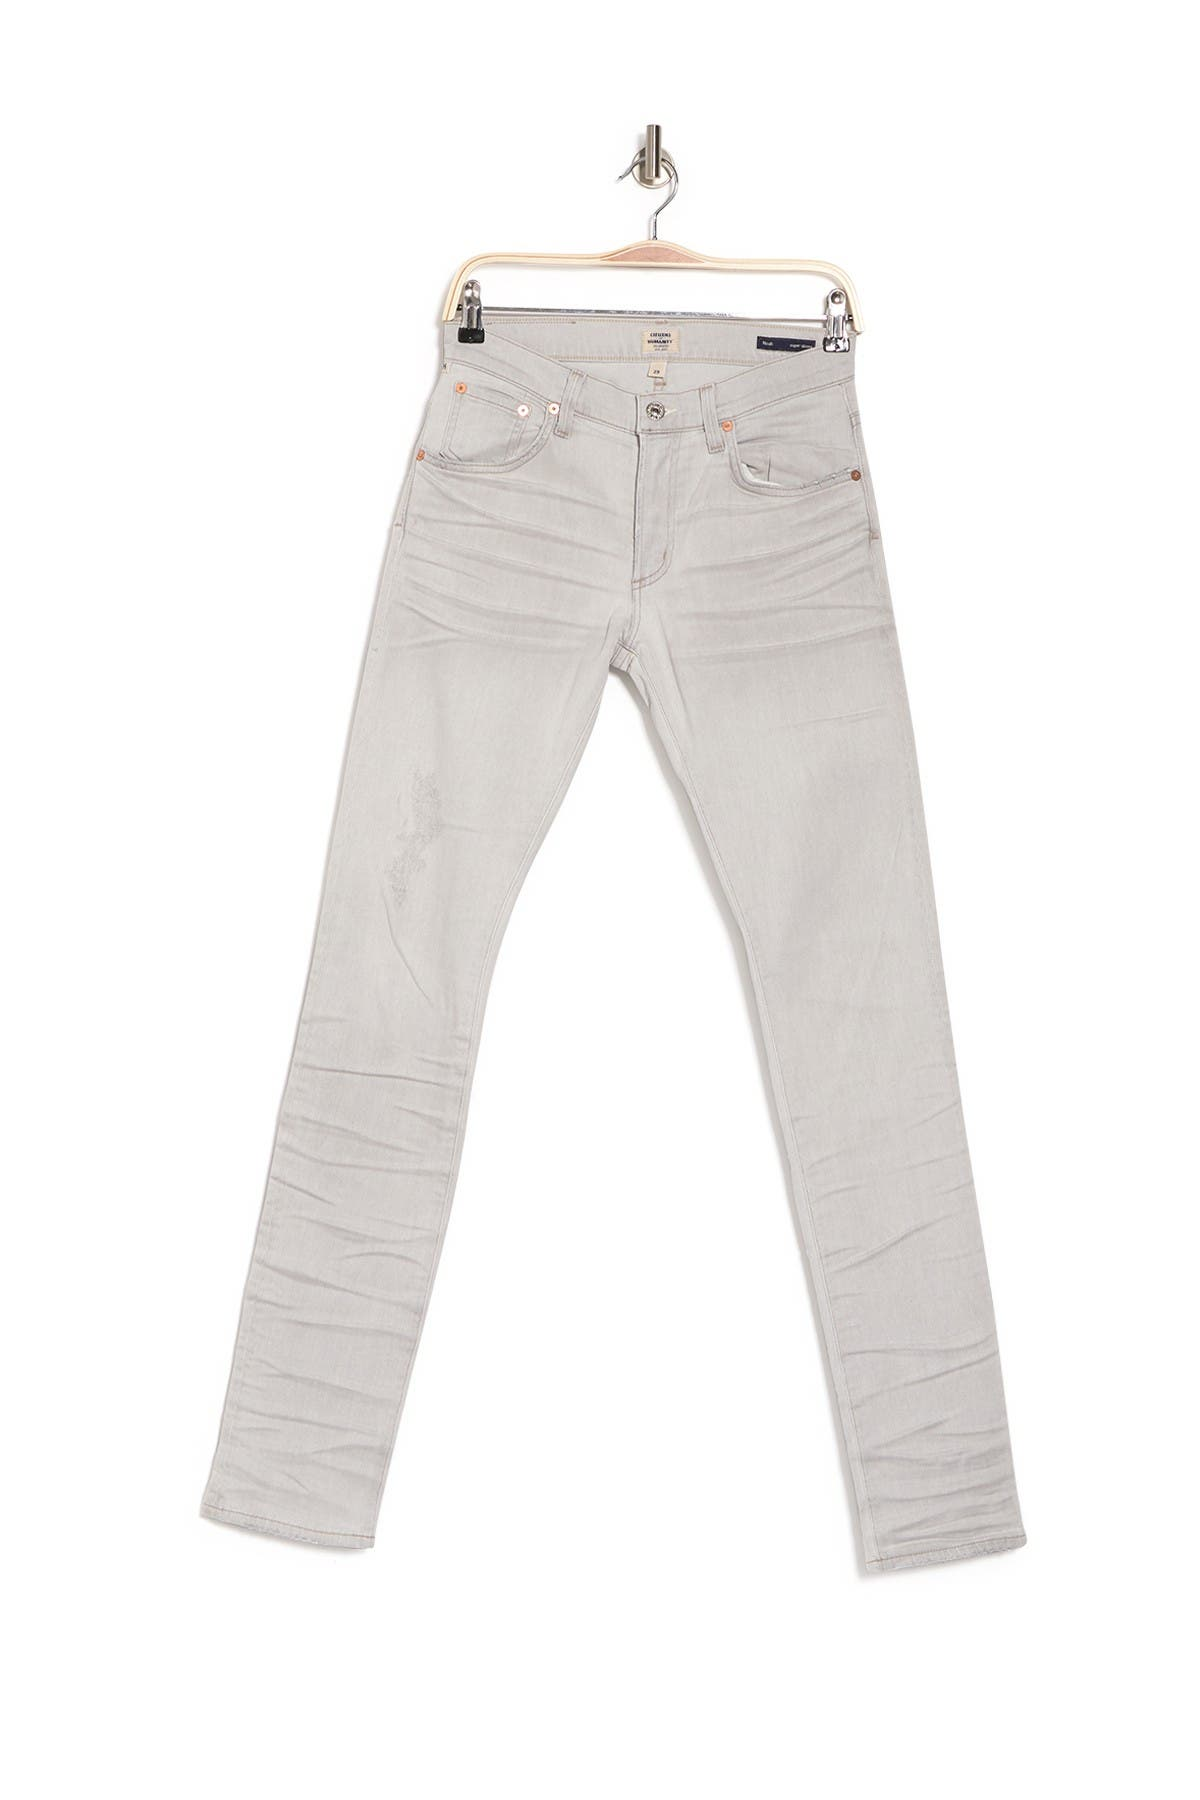 Image of Citizens Of Humanity Noah Skinny Jeans